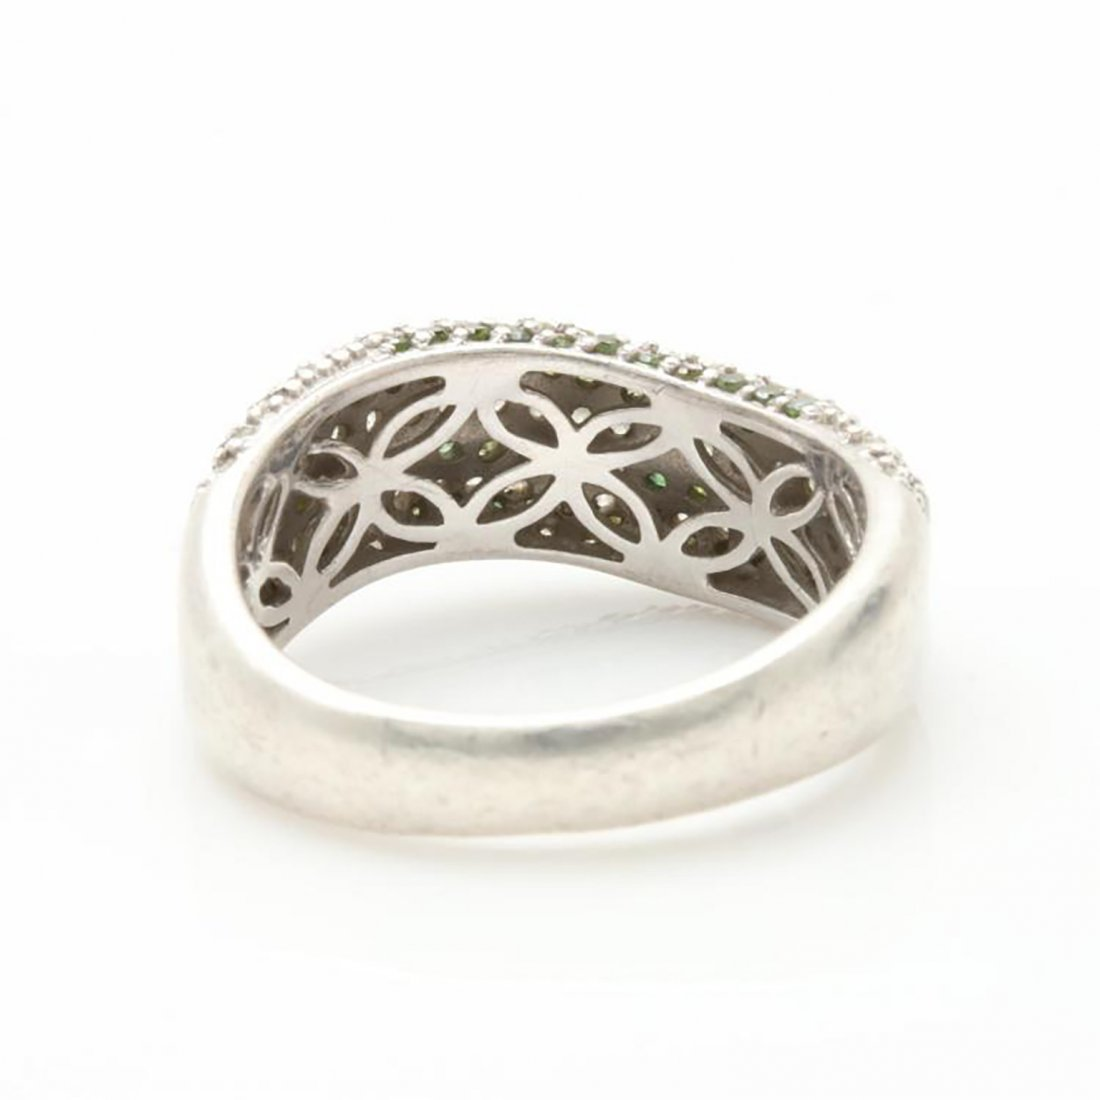 Green Diamond Ring with Accents in Sterling Silver - 4